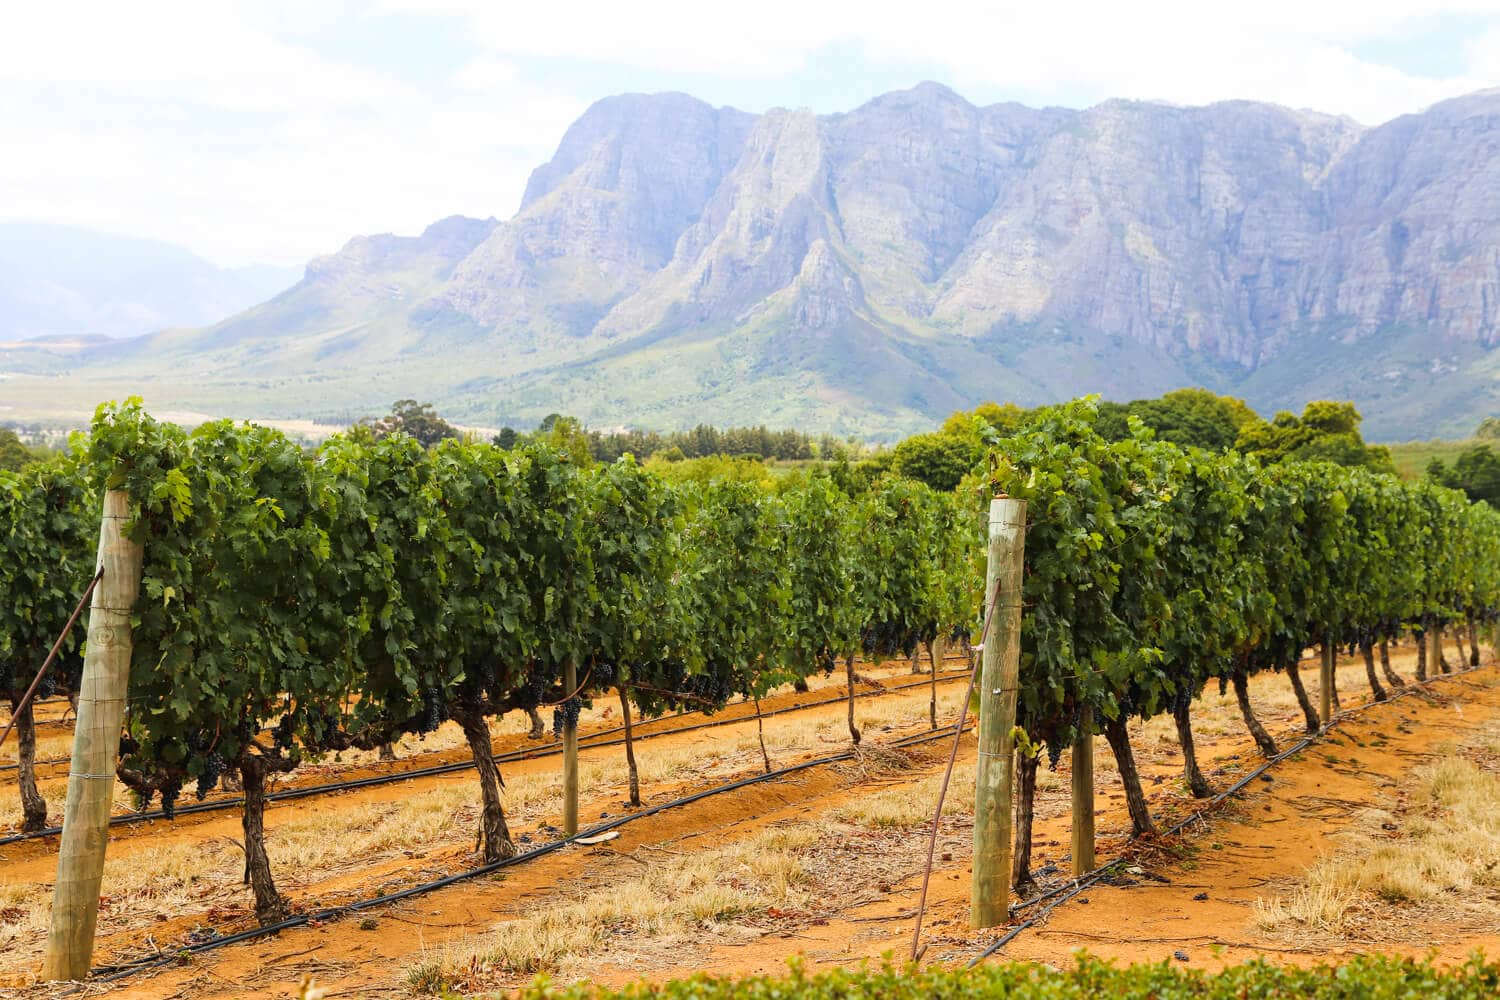 Lush green vines grow in rows by the mountains at a Stellenbosch vineyard